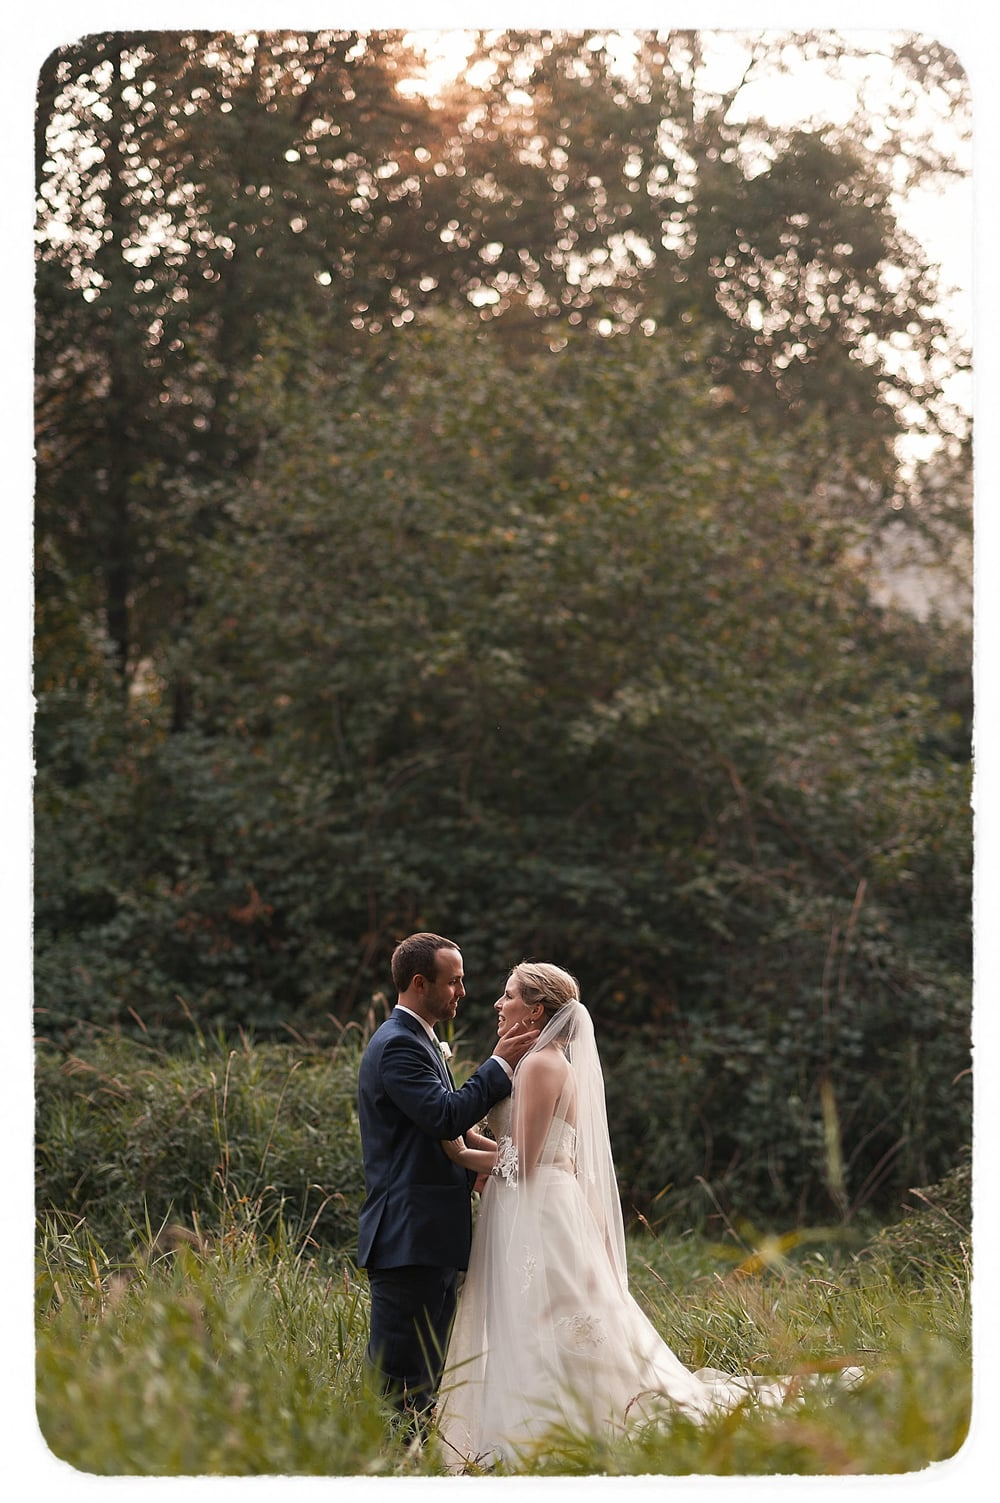 503 Kate&Marc-Wedding-OriginalCollection-503Film.jpg